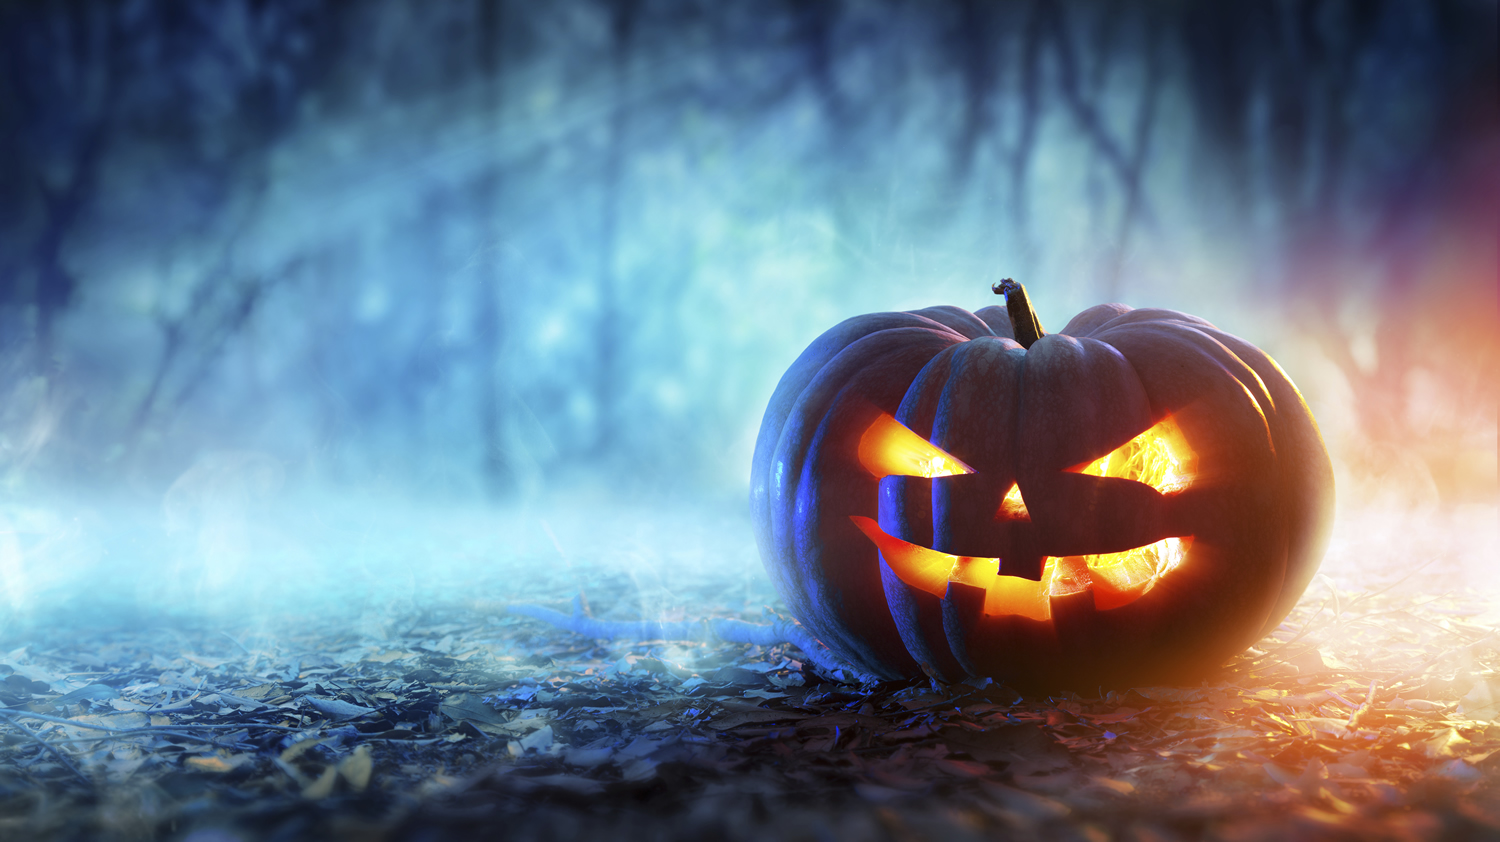 15 songs to add to your halloween party playlist (videos